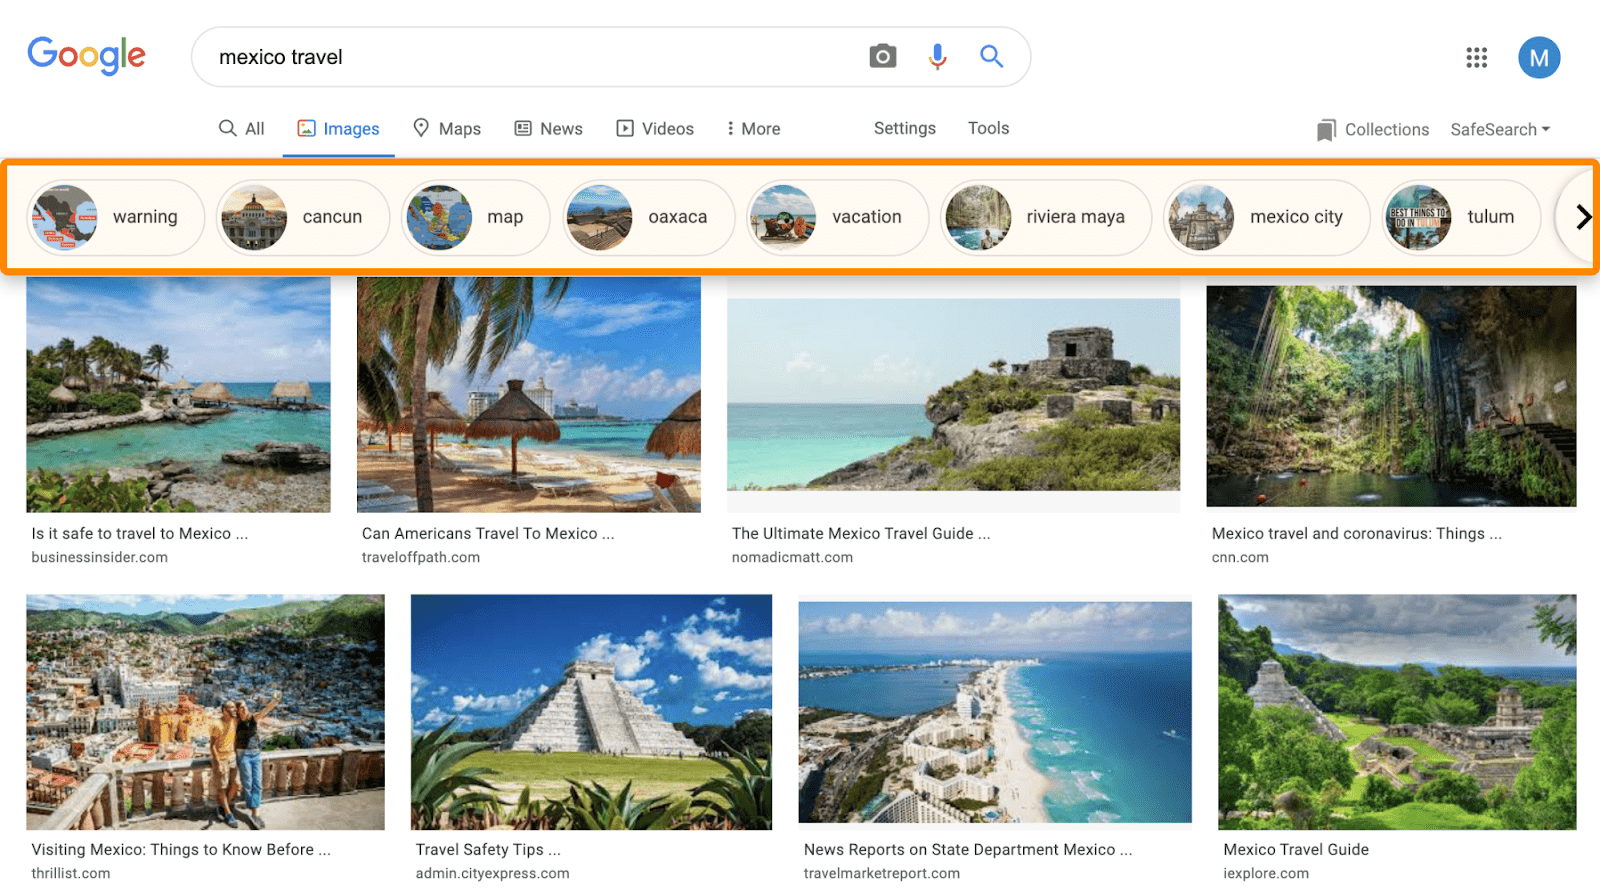 16 google images entities 1